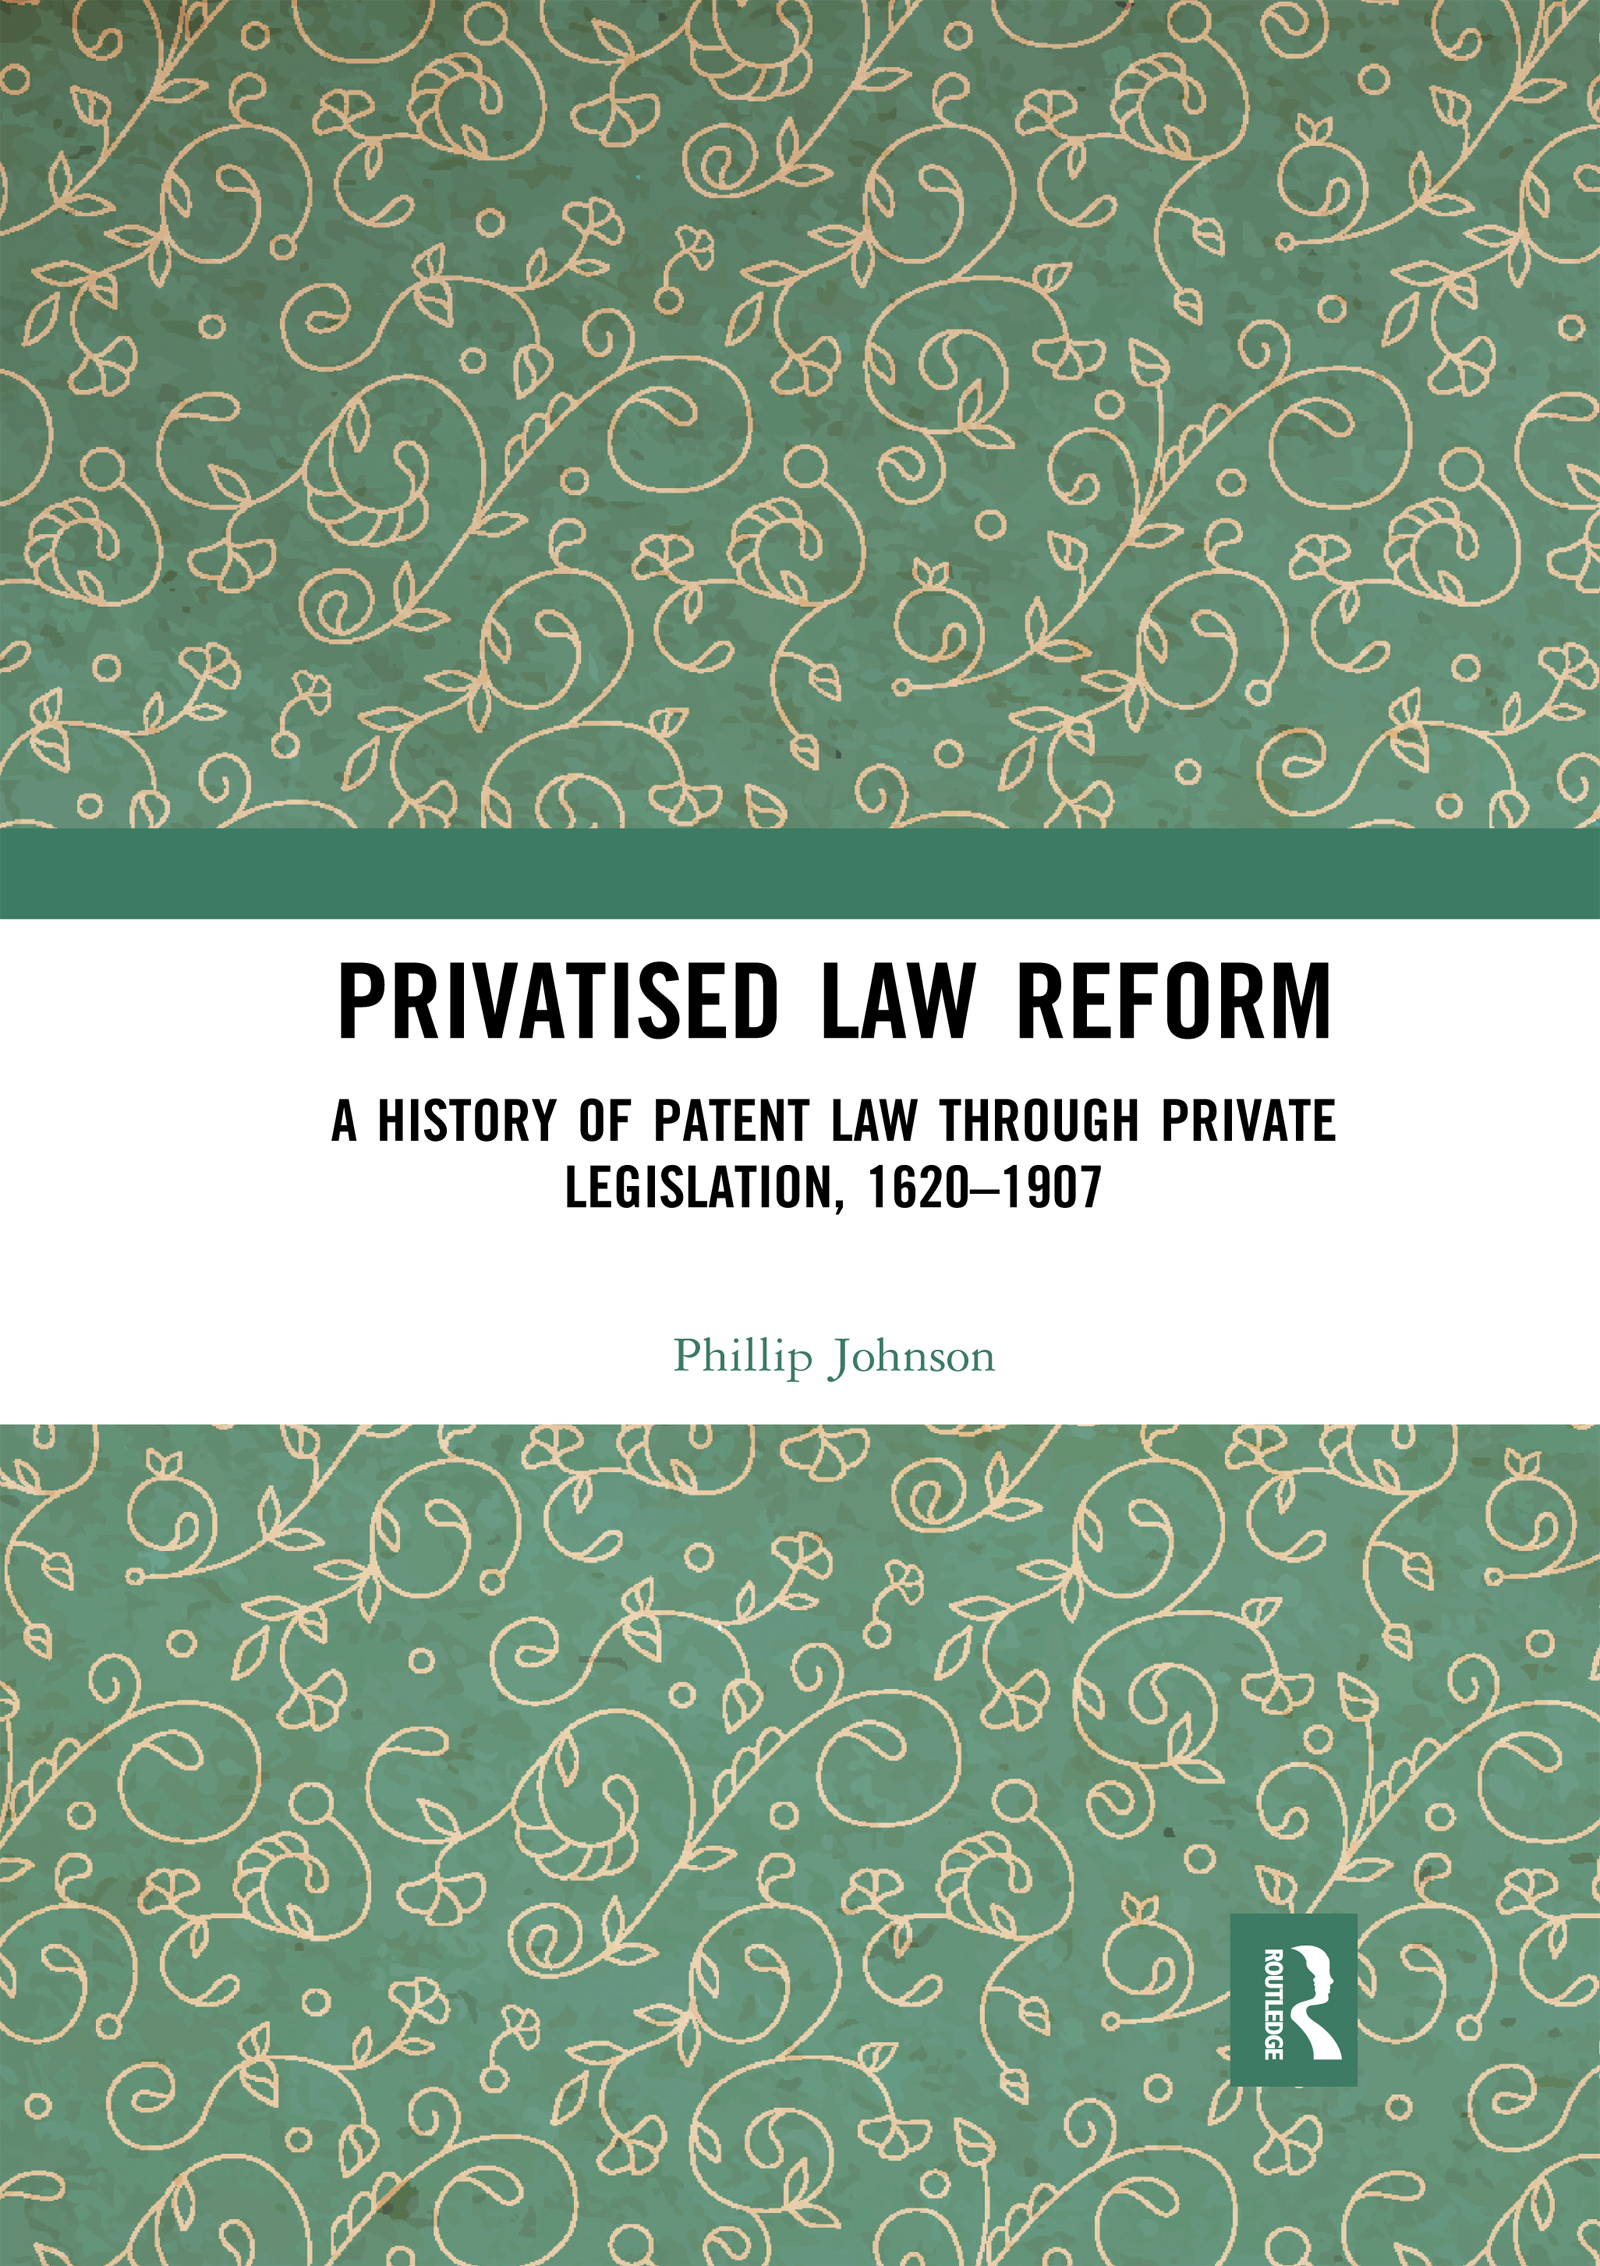 Privatised Law Reform: A History of Patent Law through Private Legislation, 1620-1907